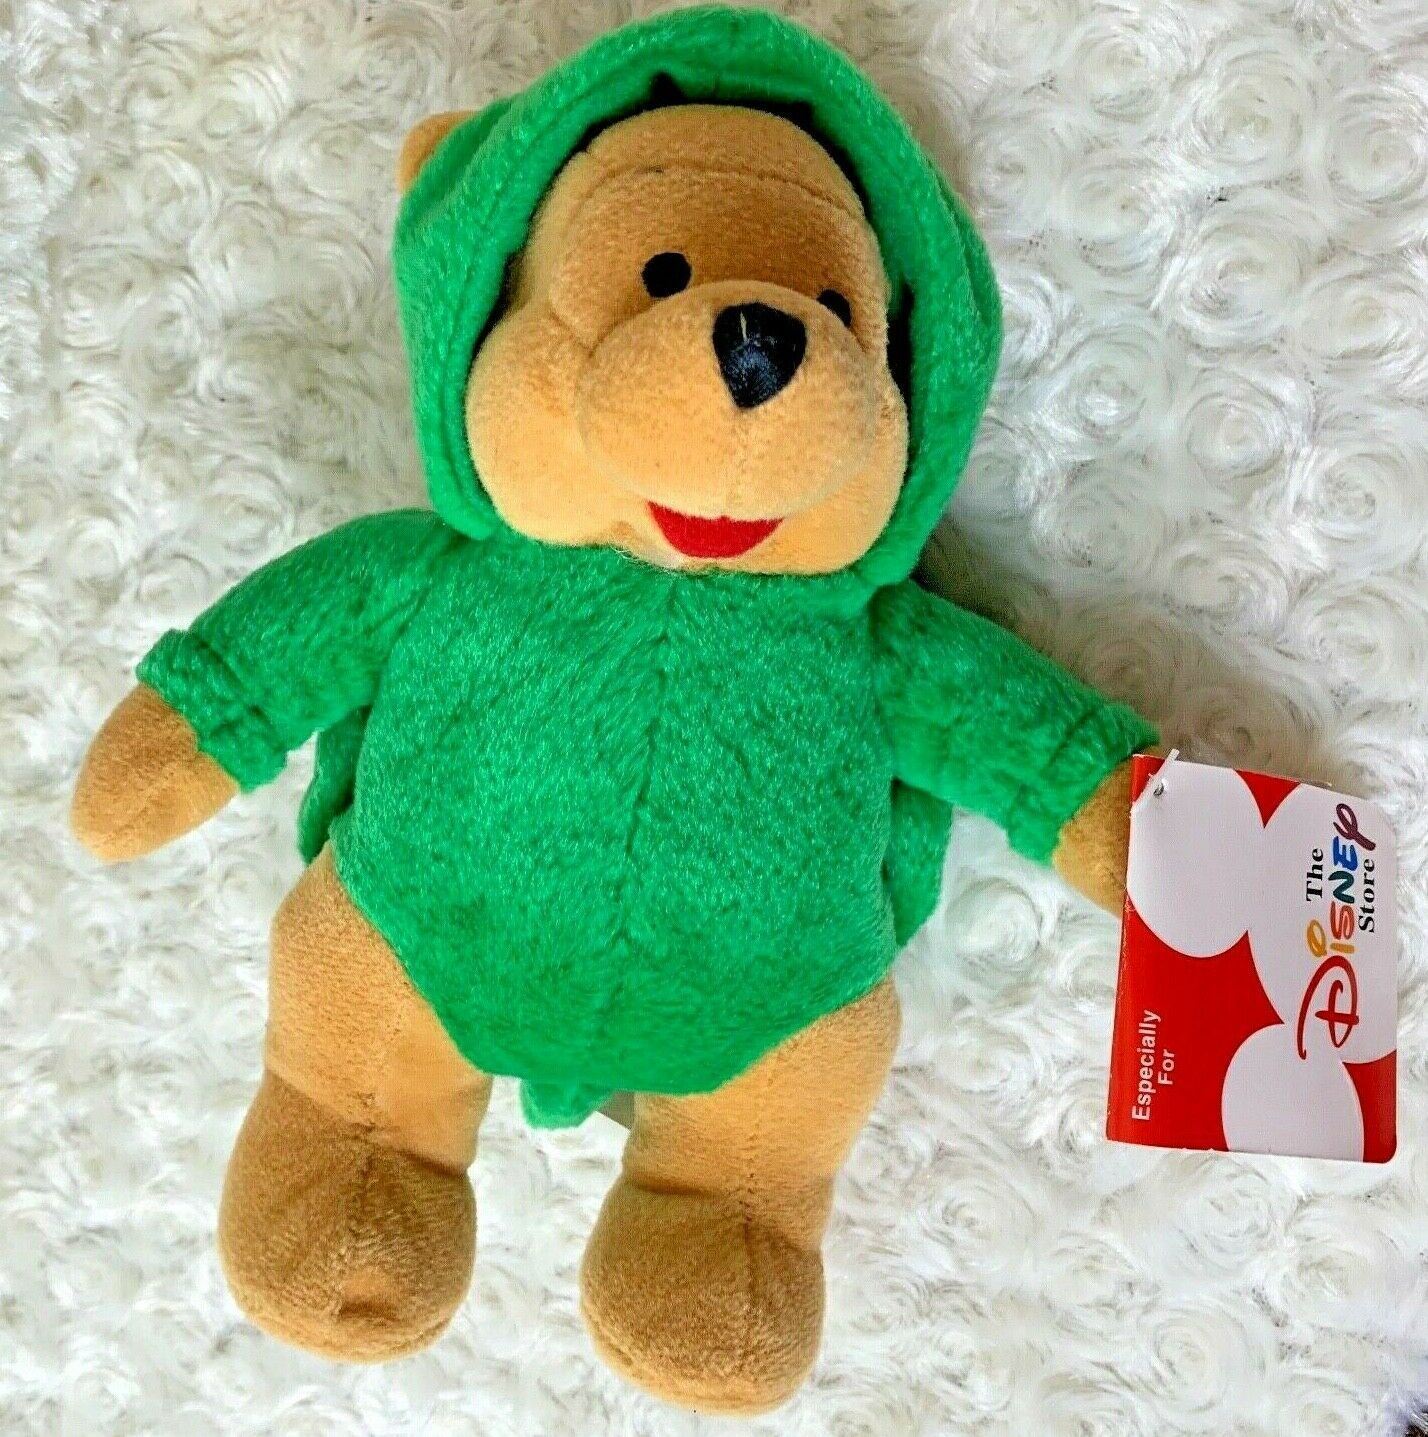 Primary image for Disney Store Winnie The Pooh Dressed as Turtle New Plush Bean Bag Toy Stuffed